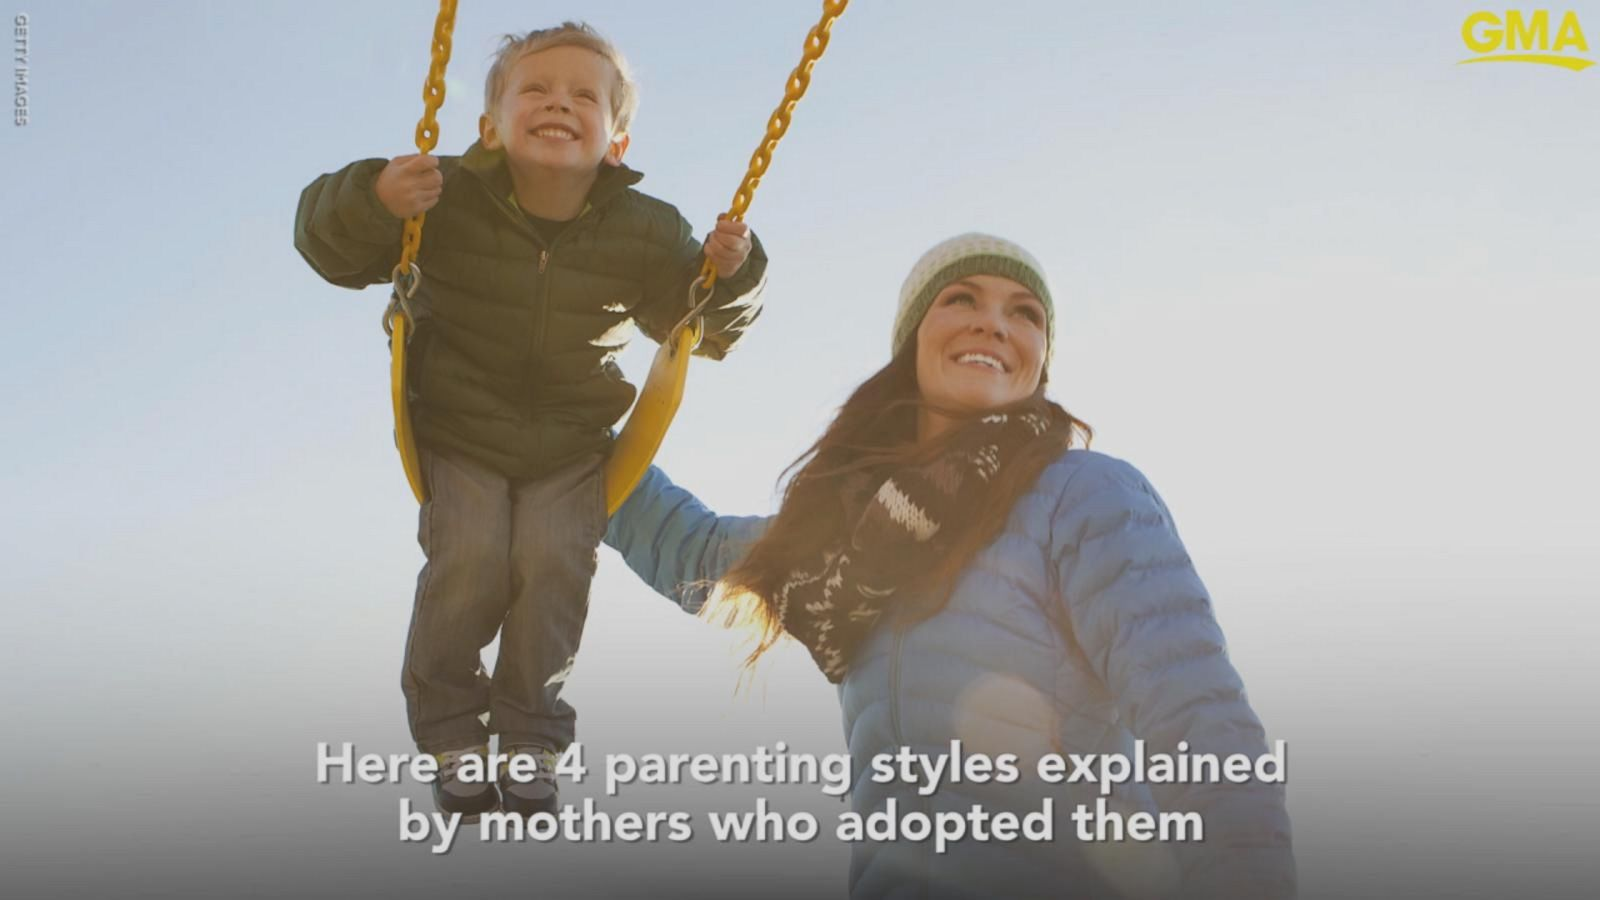 Free Range To Elephant Parenting How To Find The Right Parenting Style For You Gma